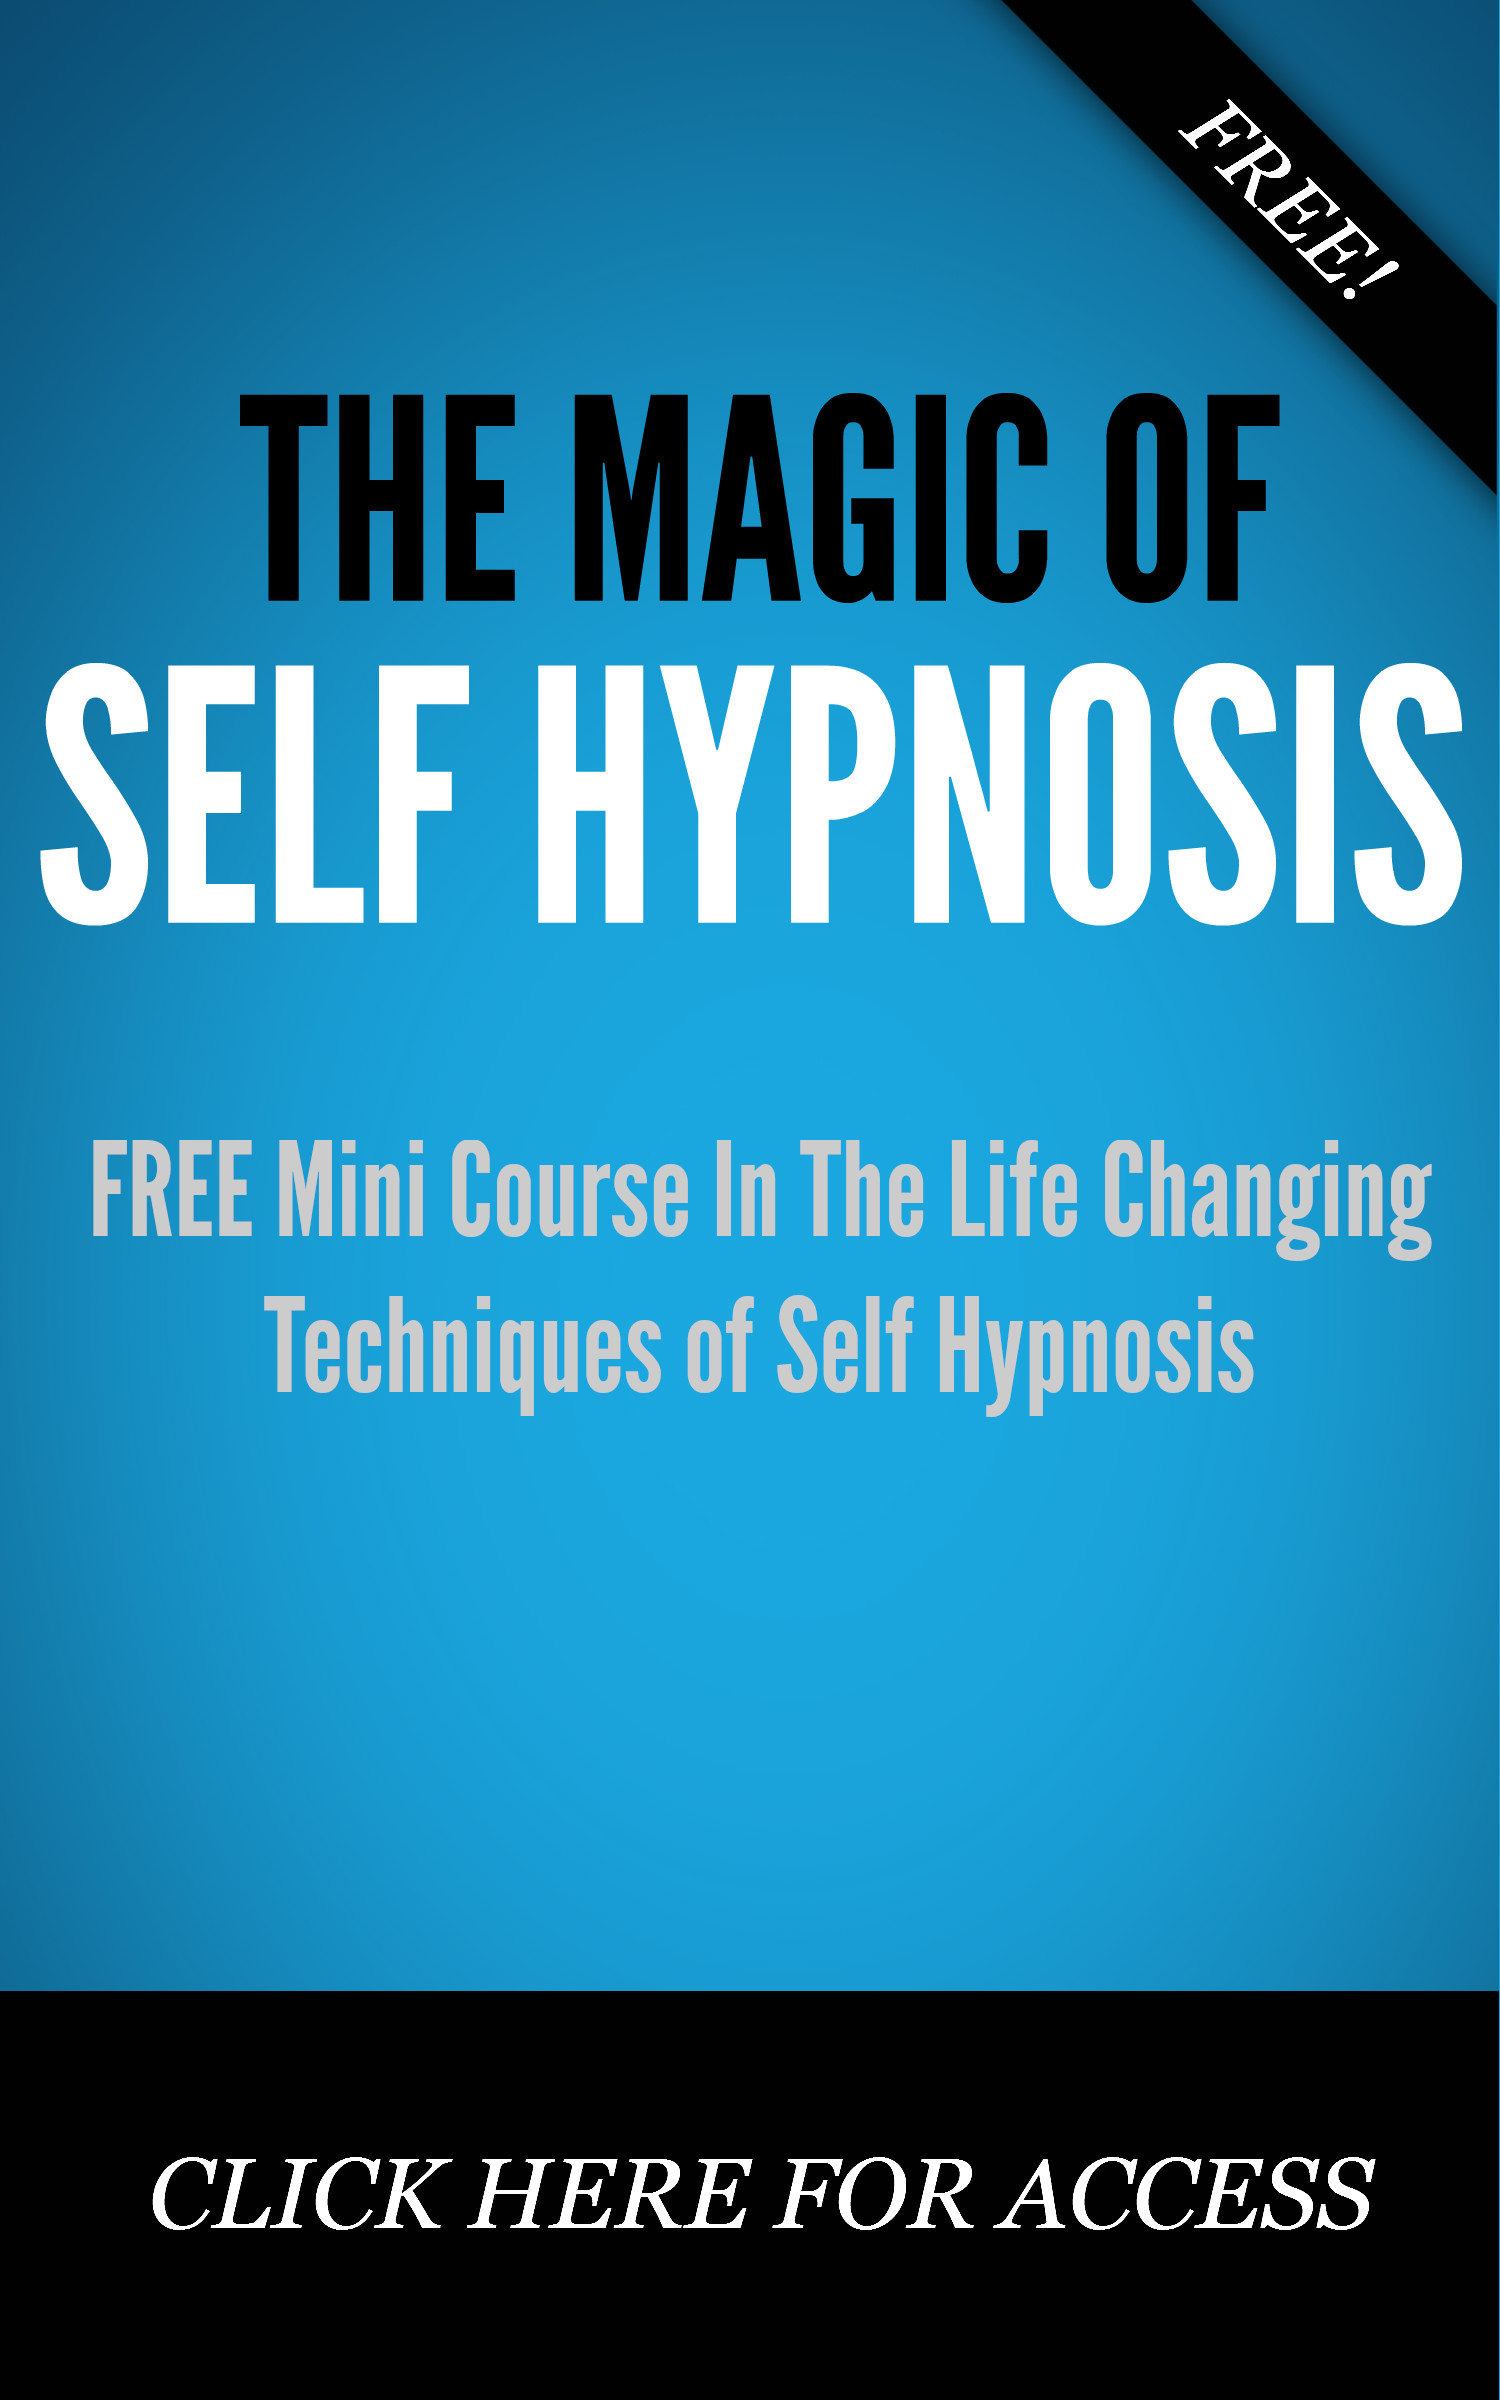 Free Mini Course - The Magic of Self Hypnosis